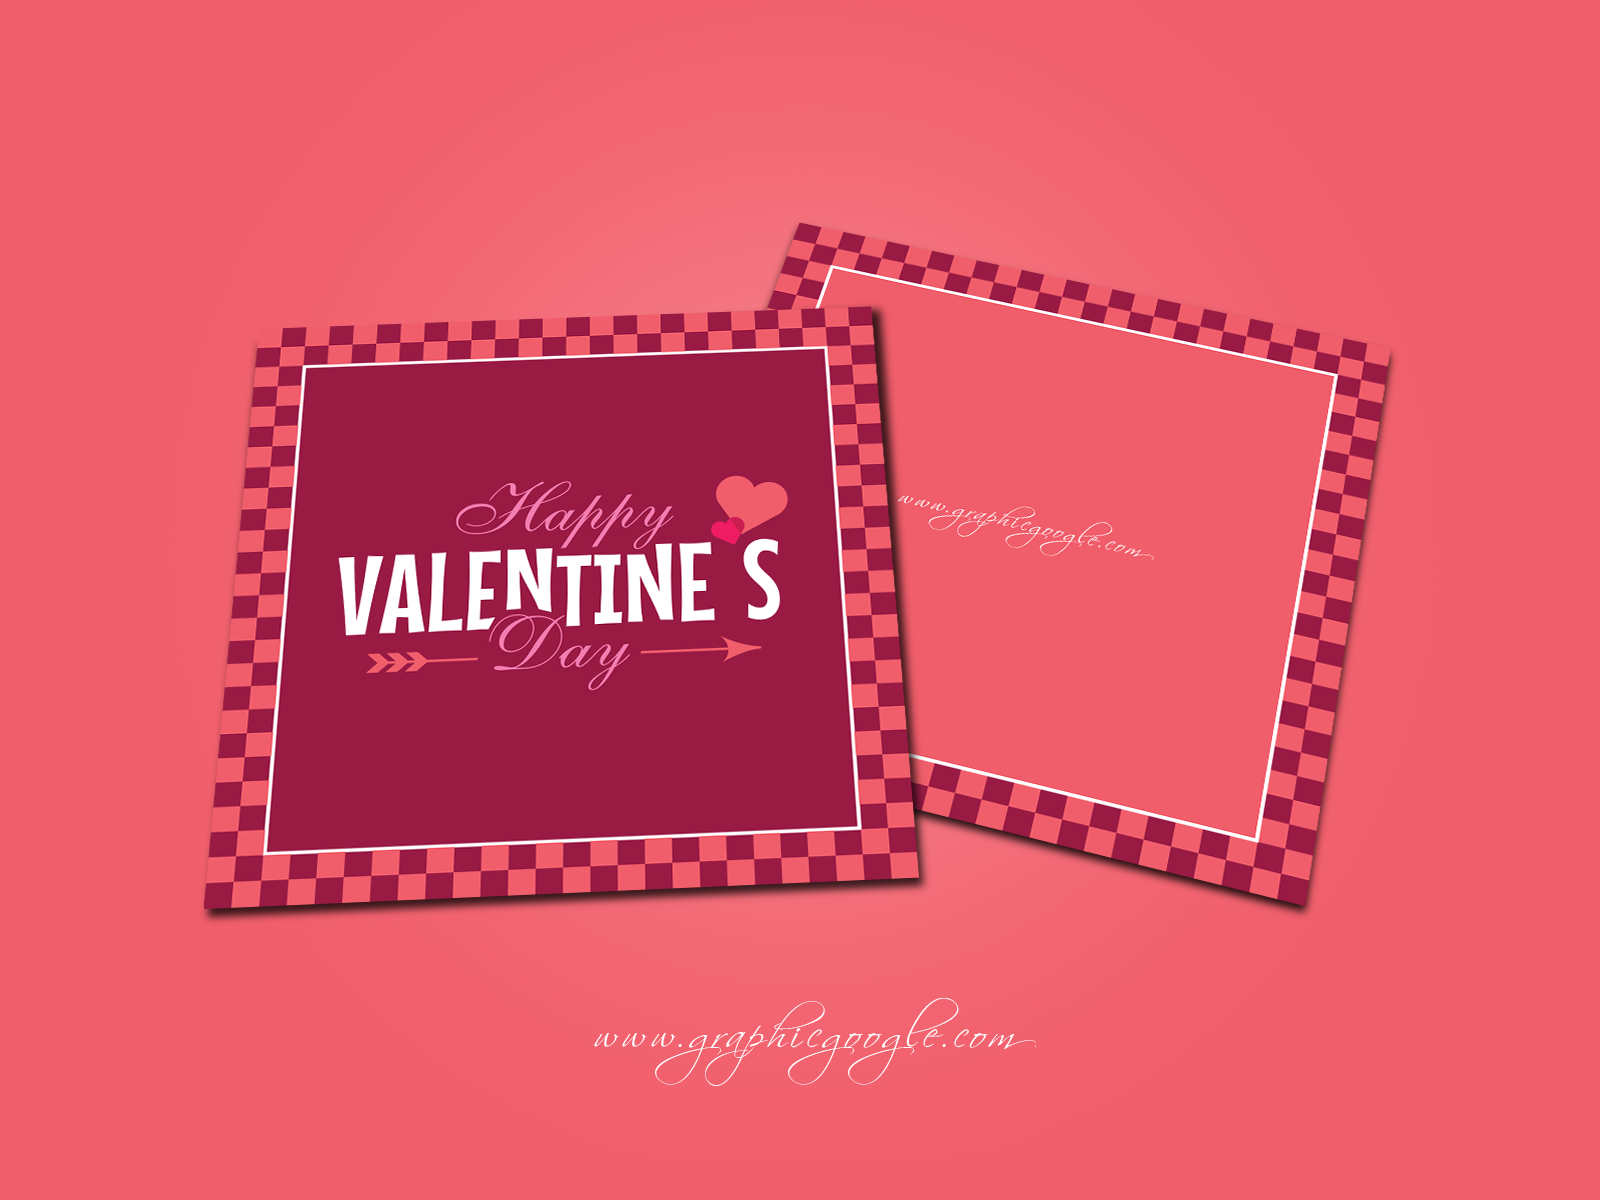 Free Happy Valentines Day Greeting Card Design Template – Greeting Cards of Valentine Day